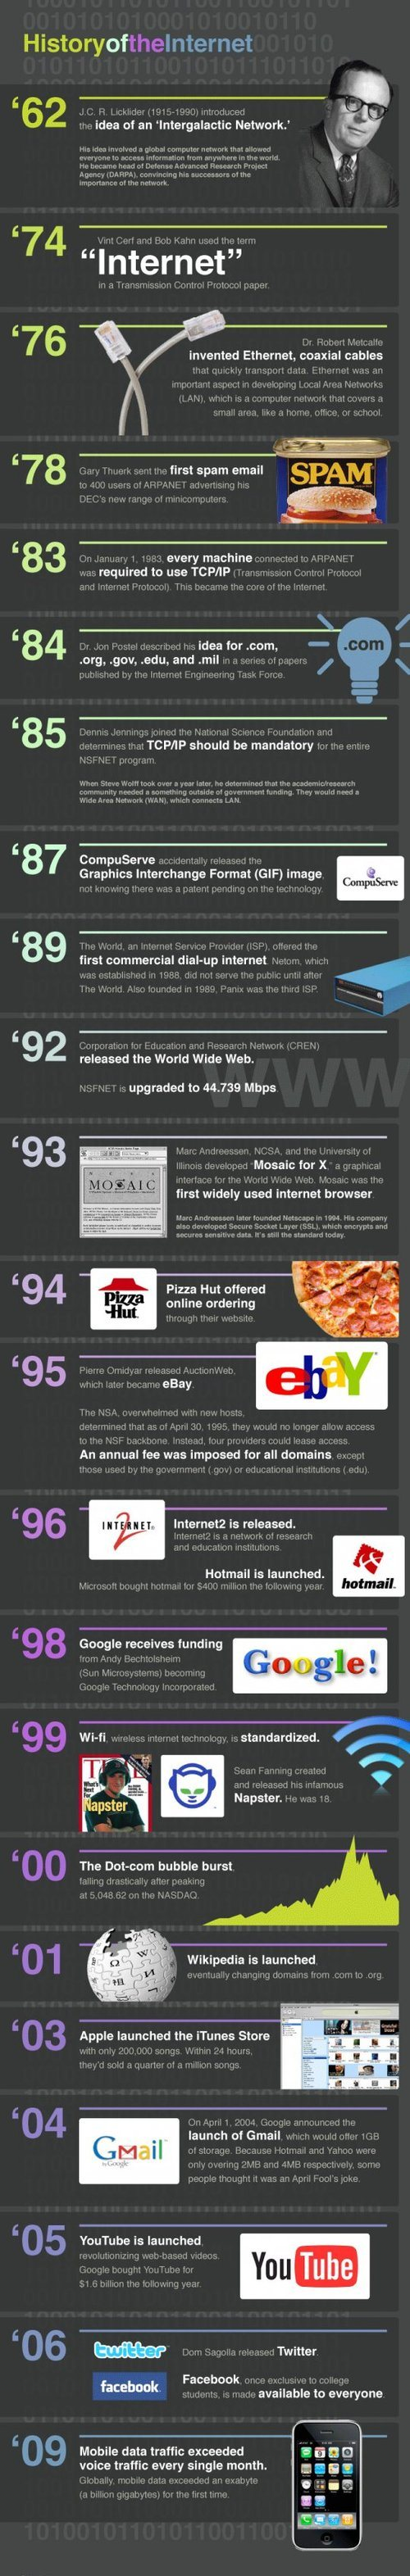 History-Of-The-Internet-infographic